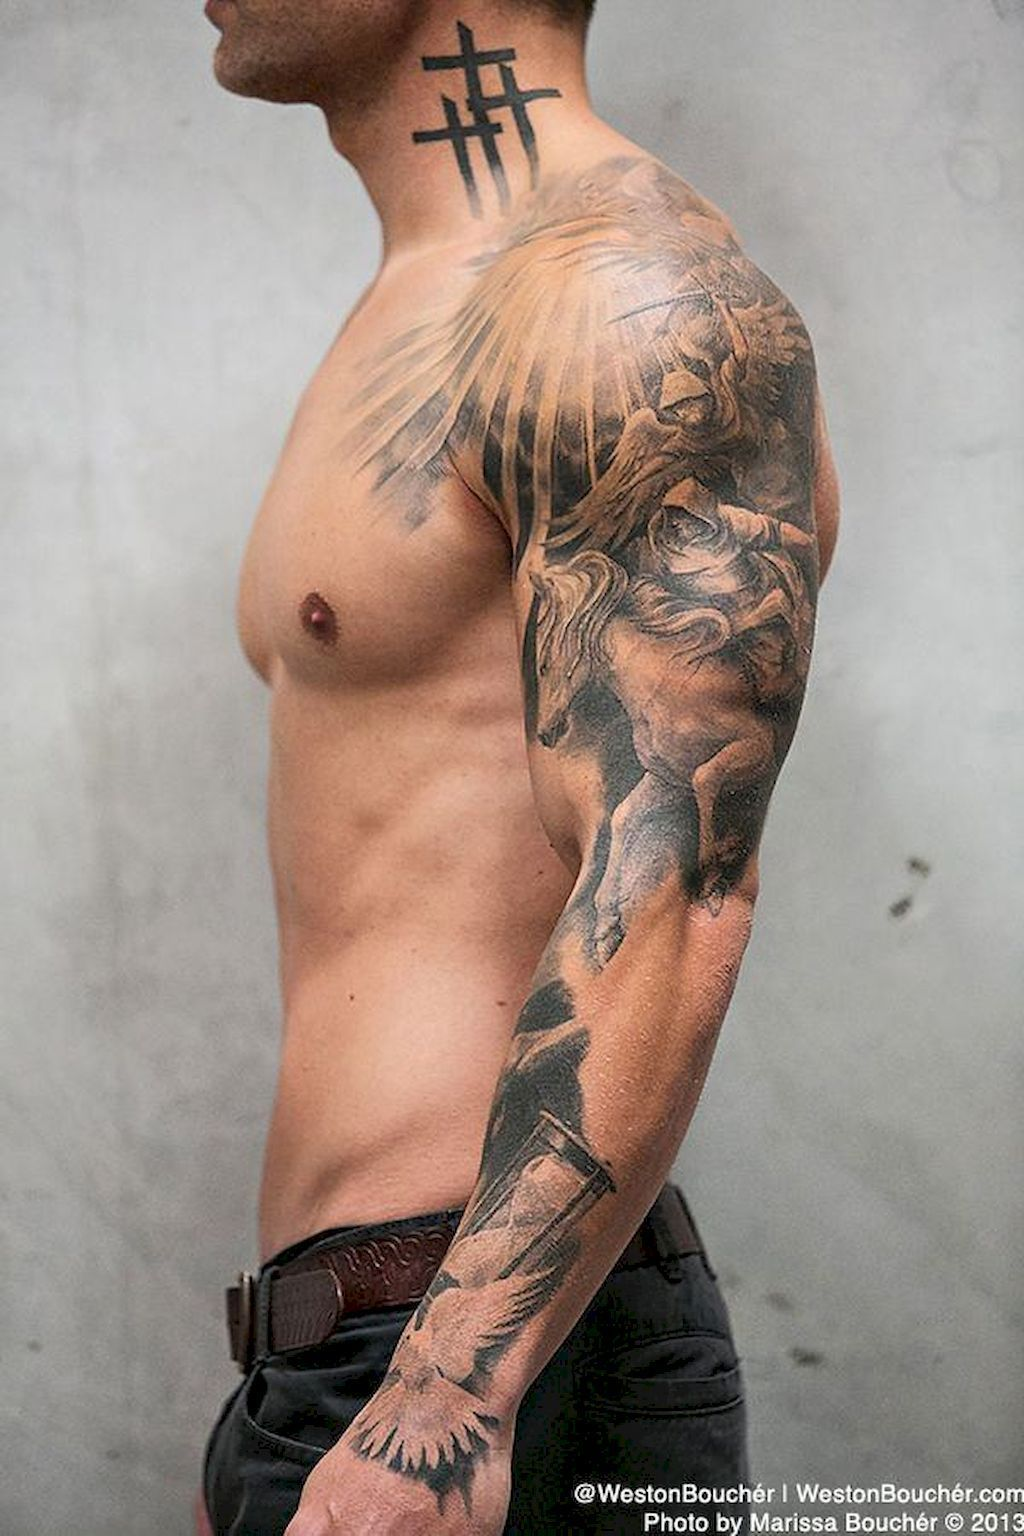 34 Amazing Sleeve Tattoos Ideas for Guys that Look